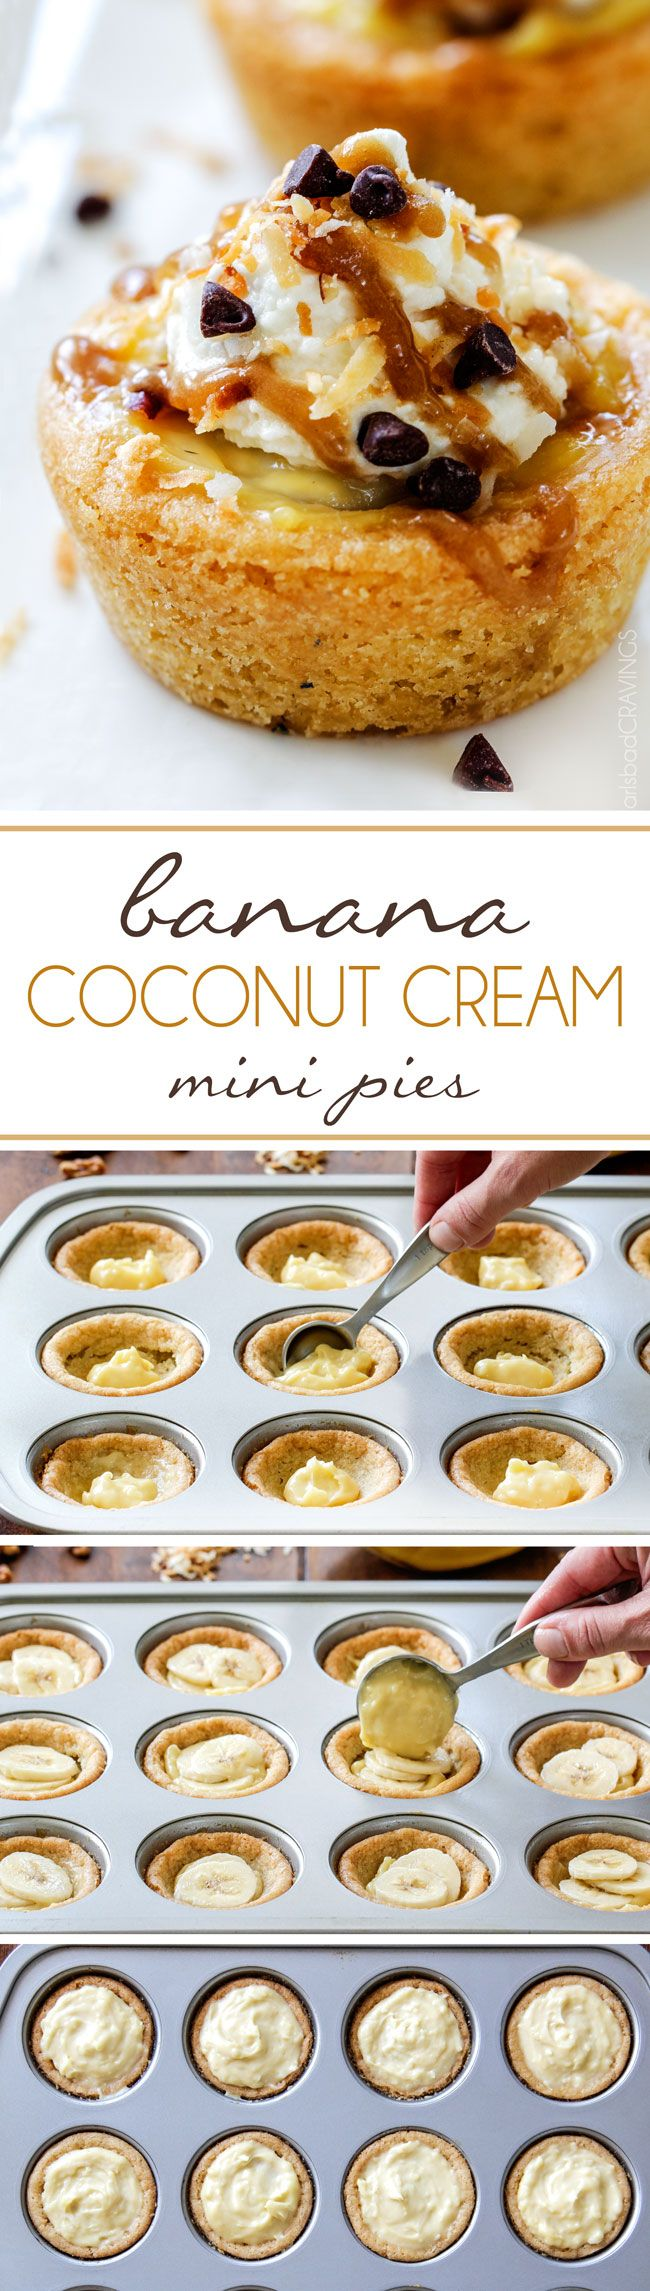 Mini Banana Coconut Cream Pies is the best of both pies in one! Baked in chewy, buttery sugar cookie cups, topped with Coconut Whipped Cream and Drizzled with Coconut Caramel - perfect for holidays!